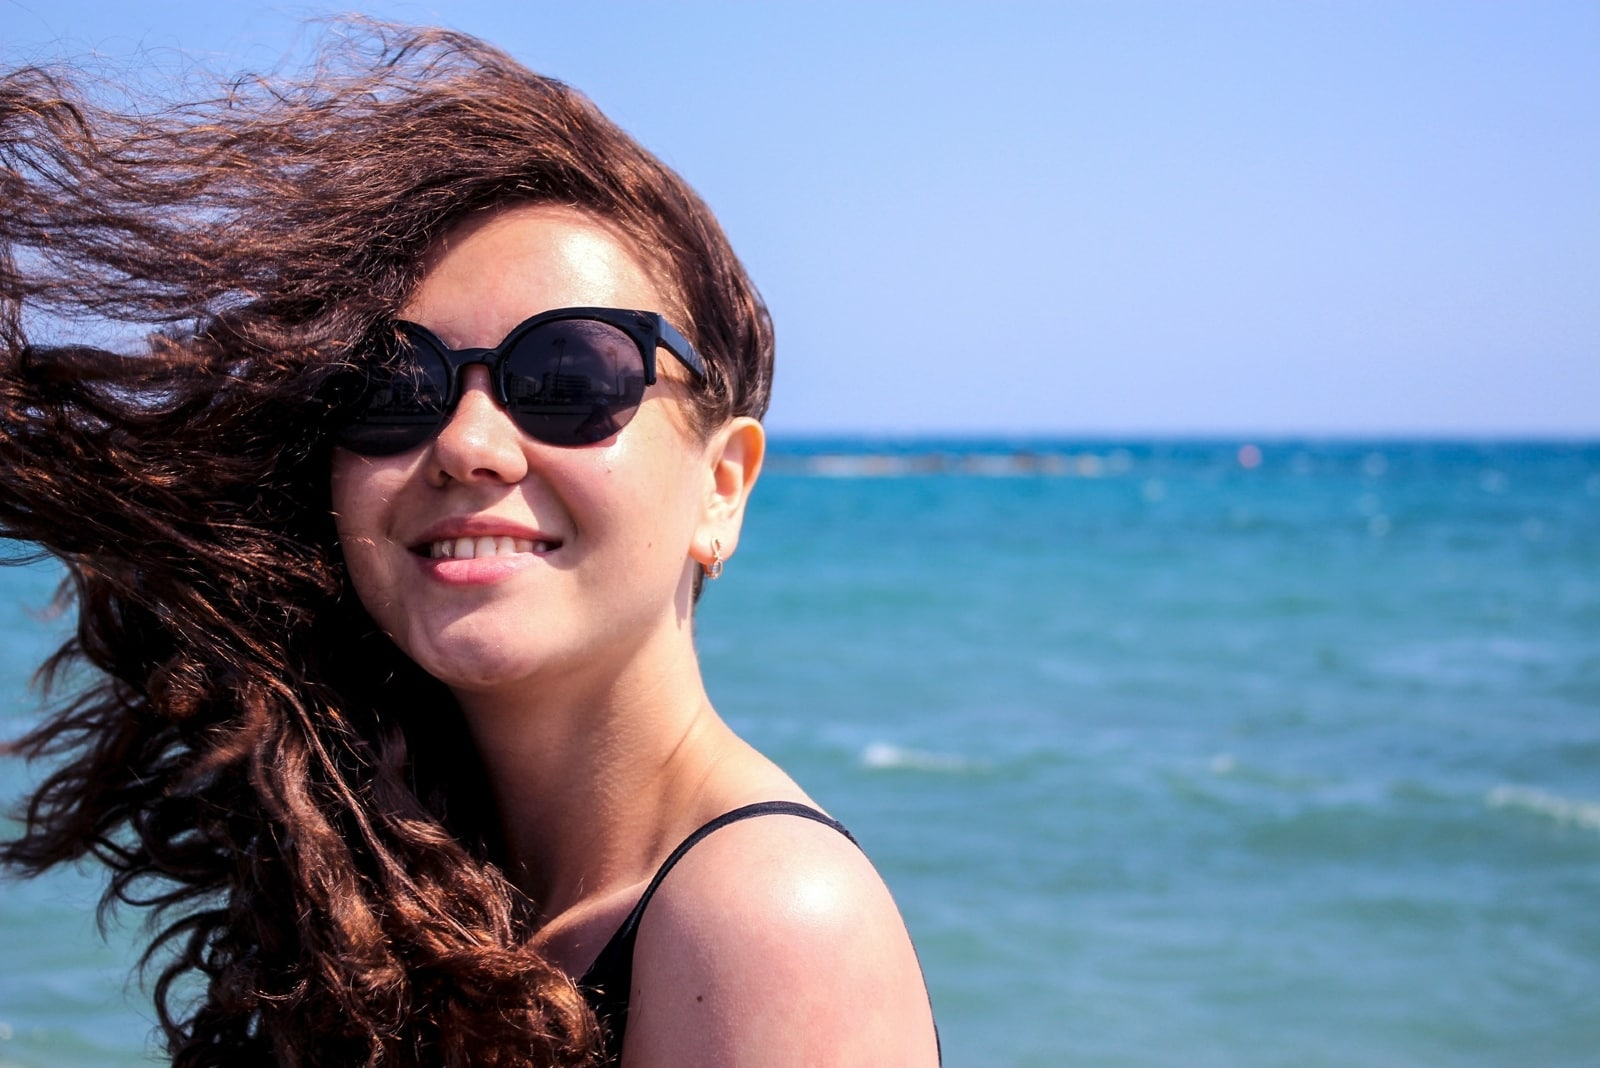 woman with sunglasses standing near sea